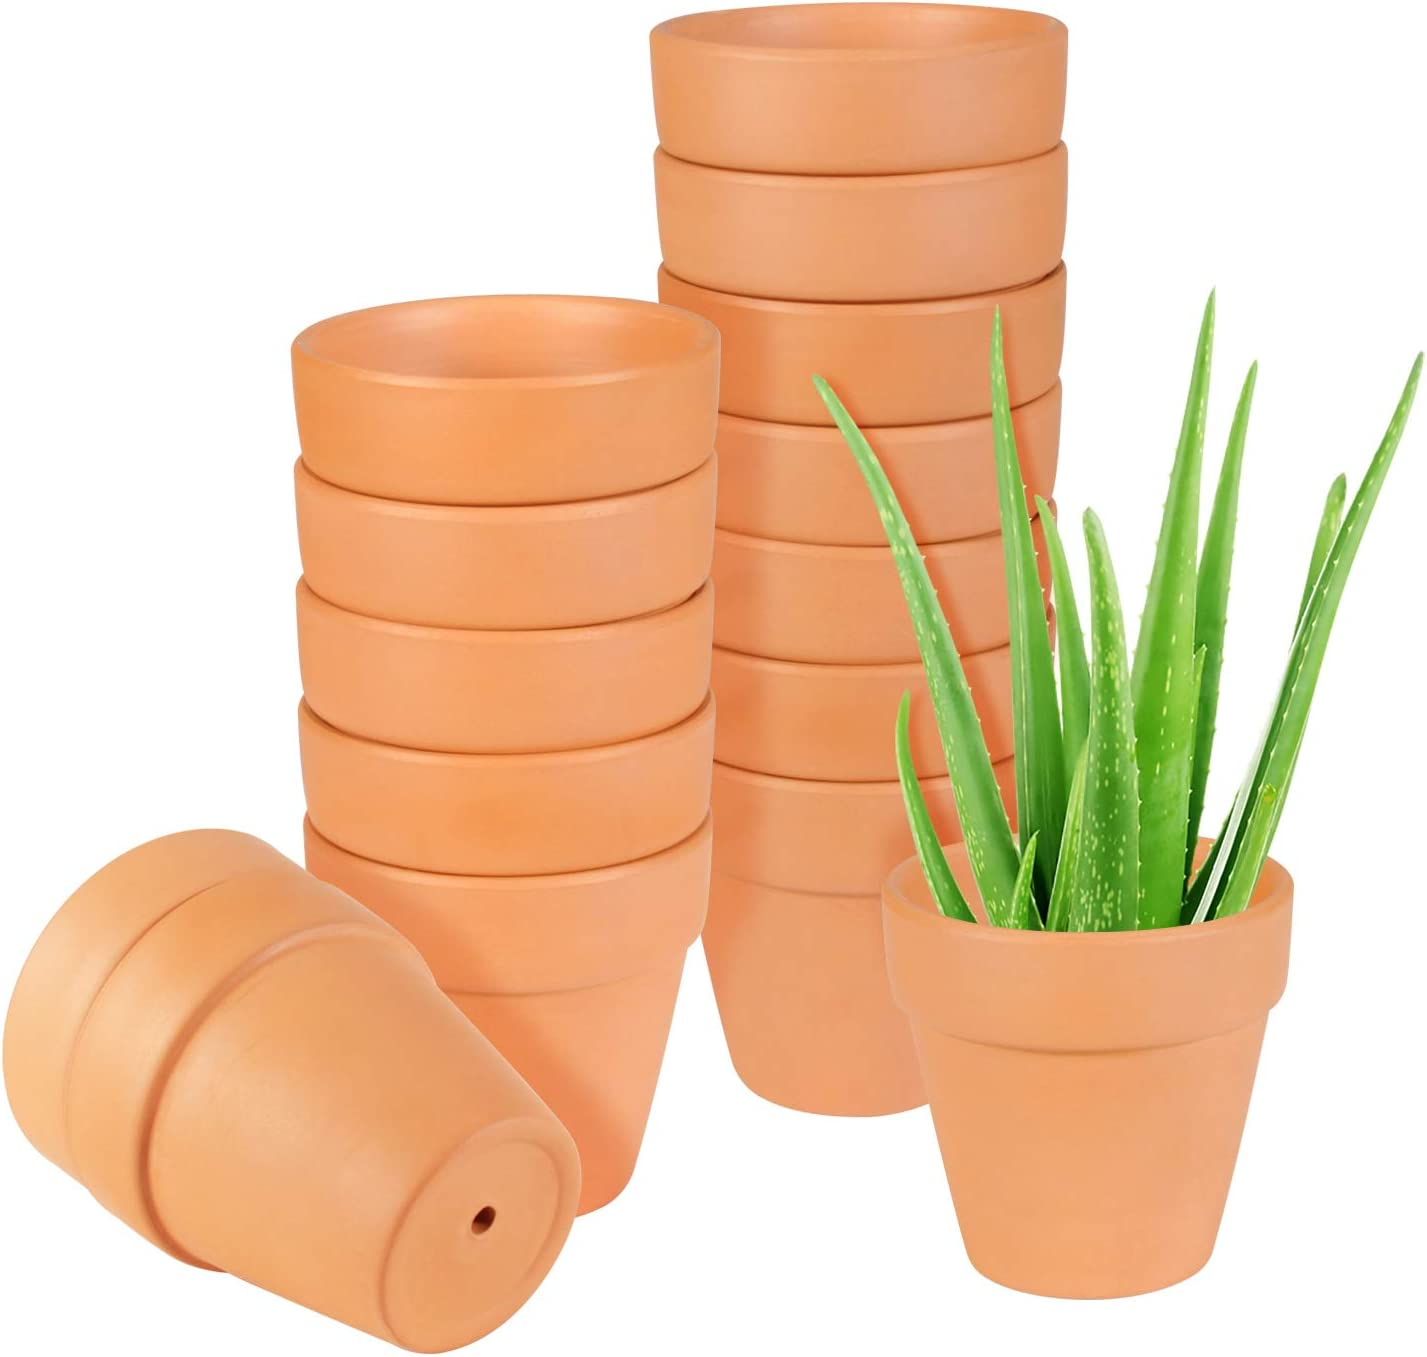 Clay Pots, EHWINE 3 inch Clay Pots for Plants Mini Cute Garden Pots Succulent Planters Small Cactus Flower Pots with Drainage, Pack of 15(Plants Not Included)